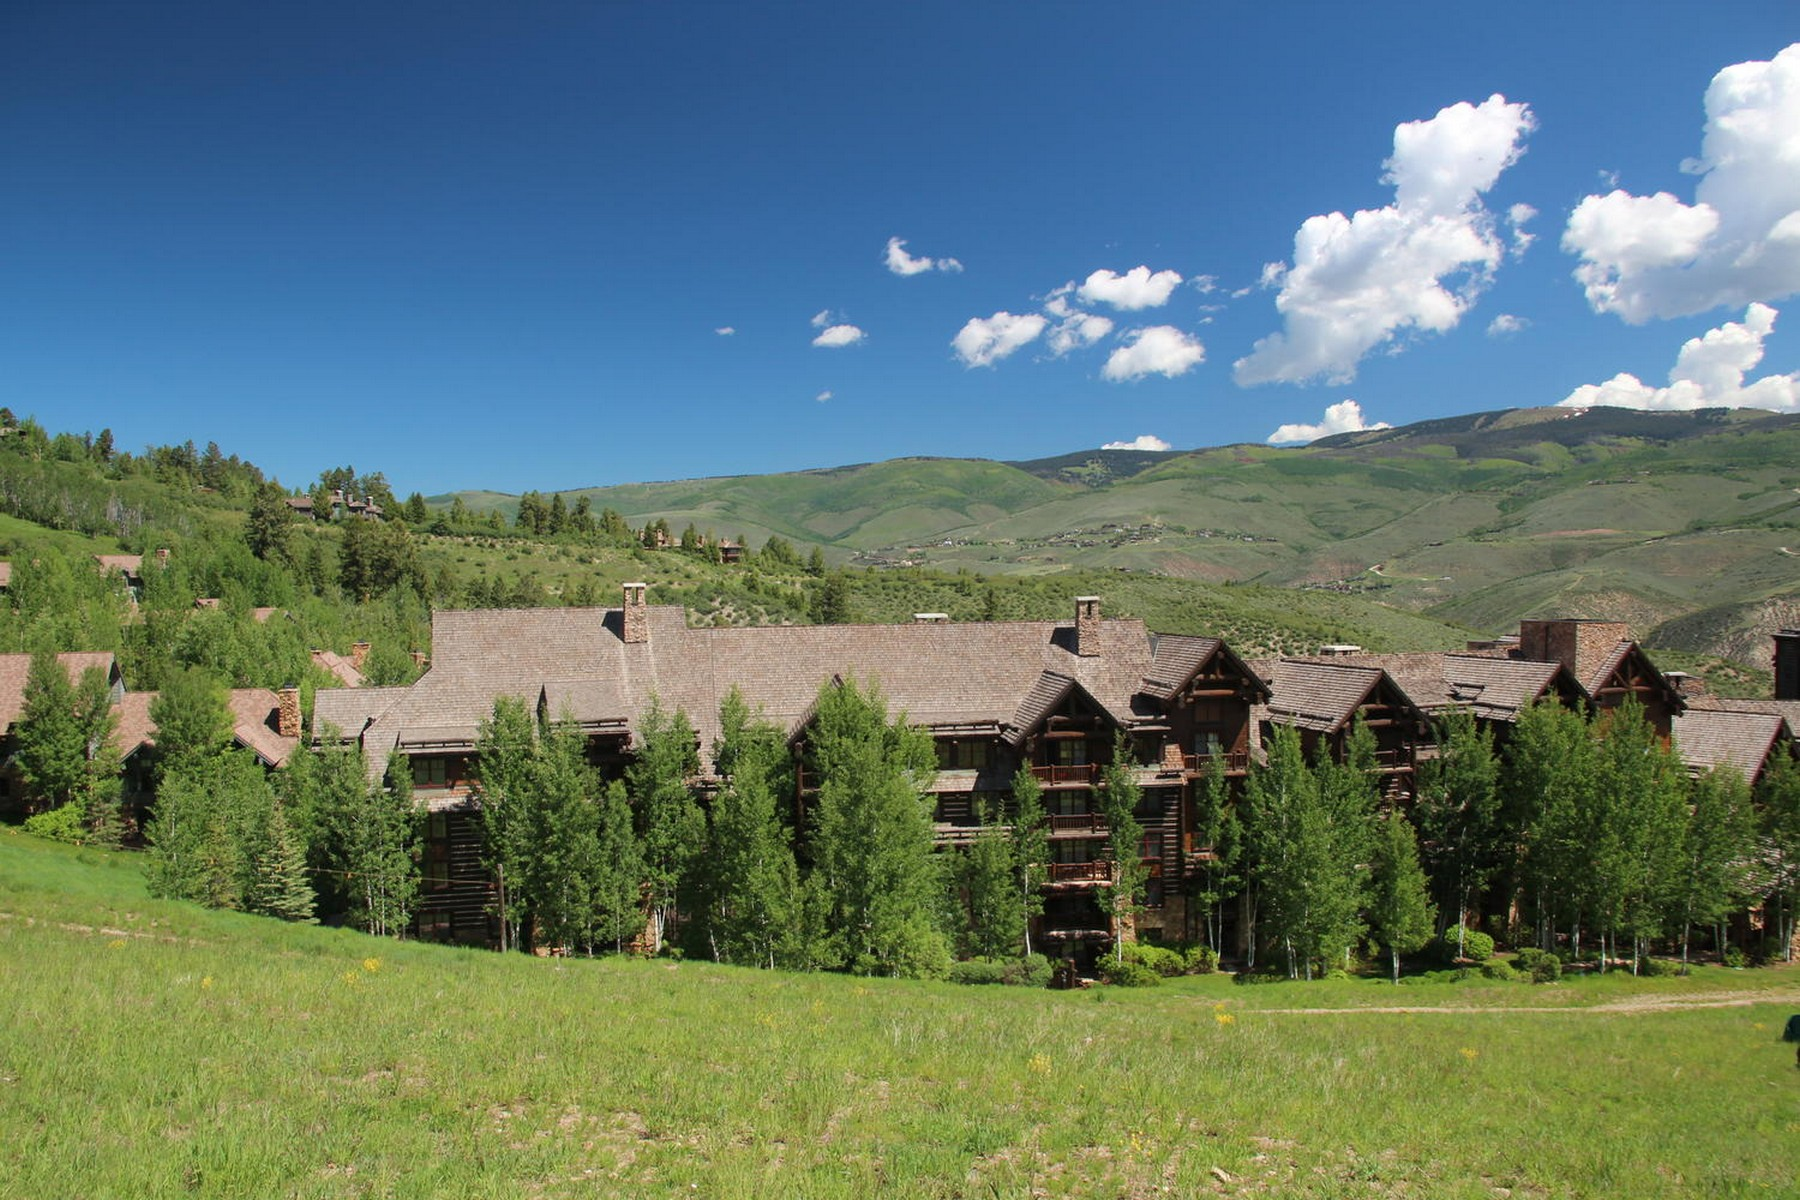 Fractional Ownership for Sale at Timbers Bachelor Gulch 100 Bachelor Ridge Road #3603-08 Bachelor Gulch, Avon, Colorado, 81620 United States